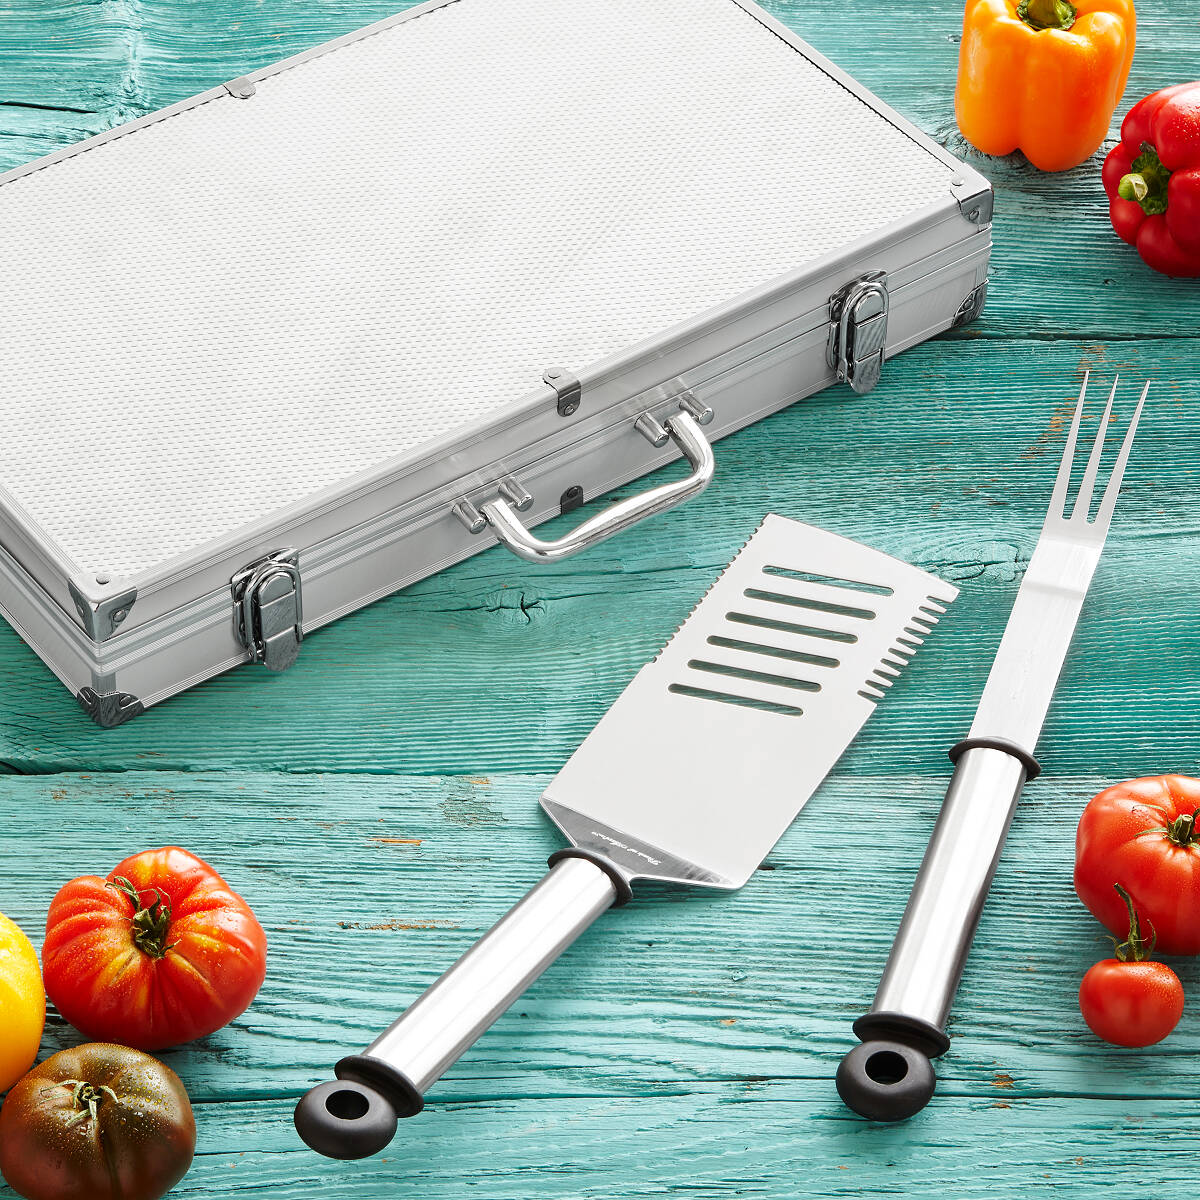 BBQ Briefcase | Cooking Utensils, Barbeque, Grill, Fourth Of July ...